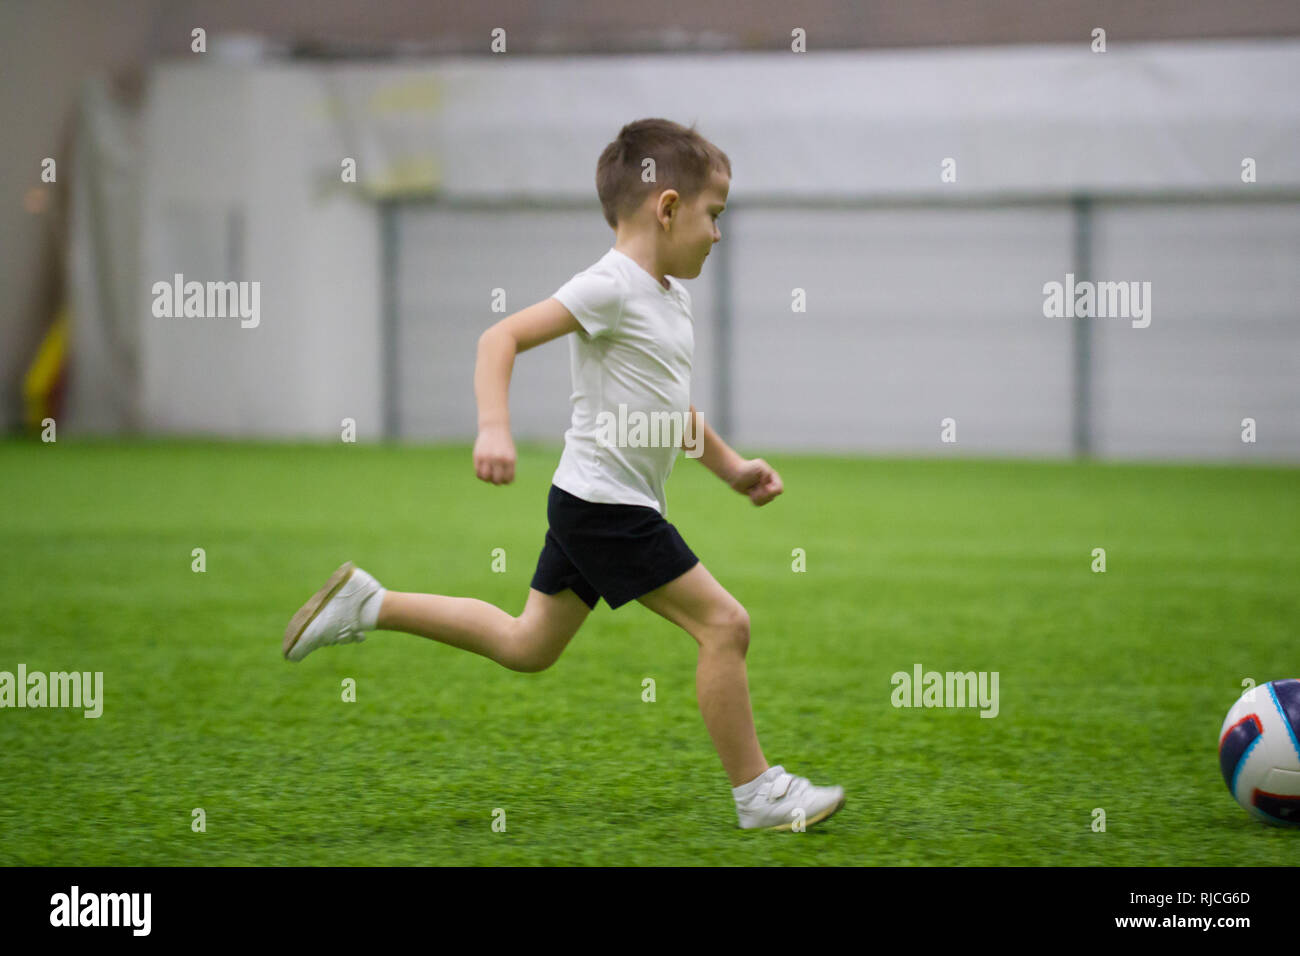 Playing football indoors. A little boy running on the field - Stock Image